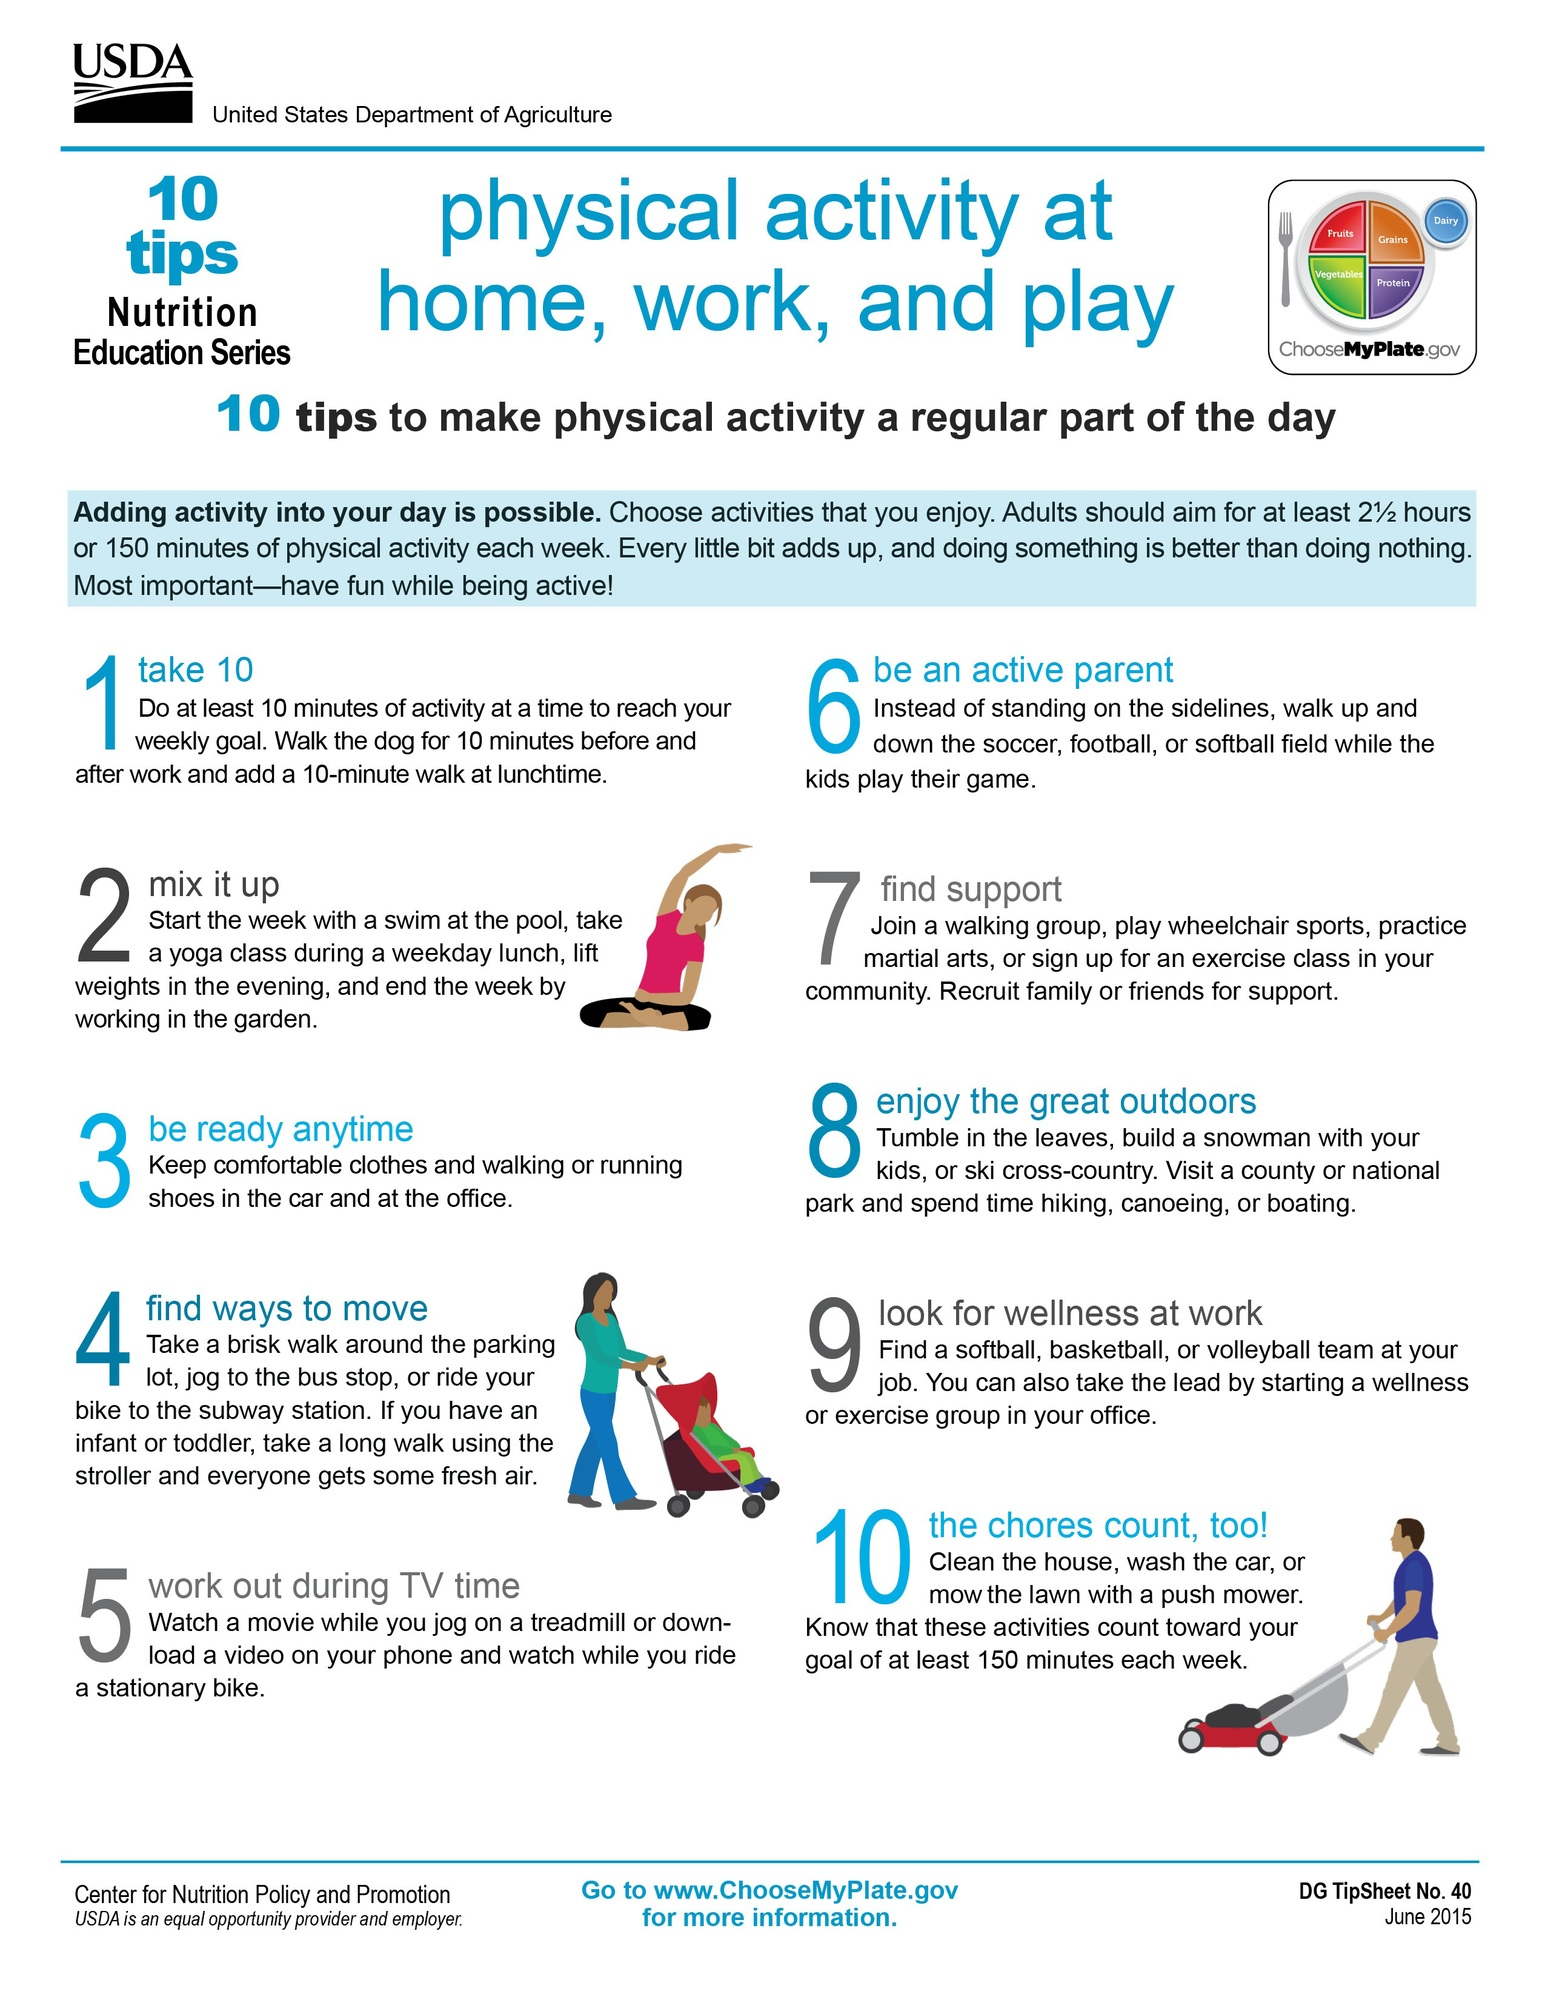 Physical Activity at Home, Work, and Play: 10 Tips Nutrition